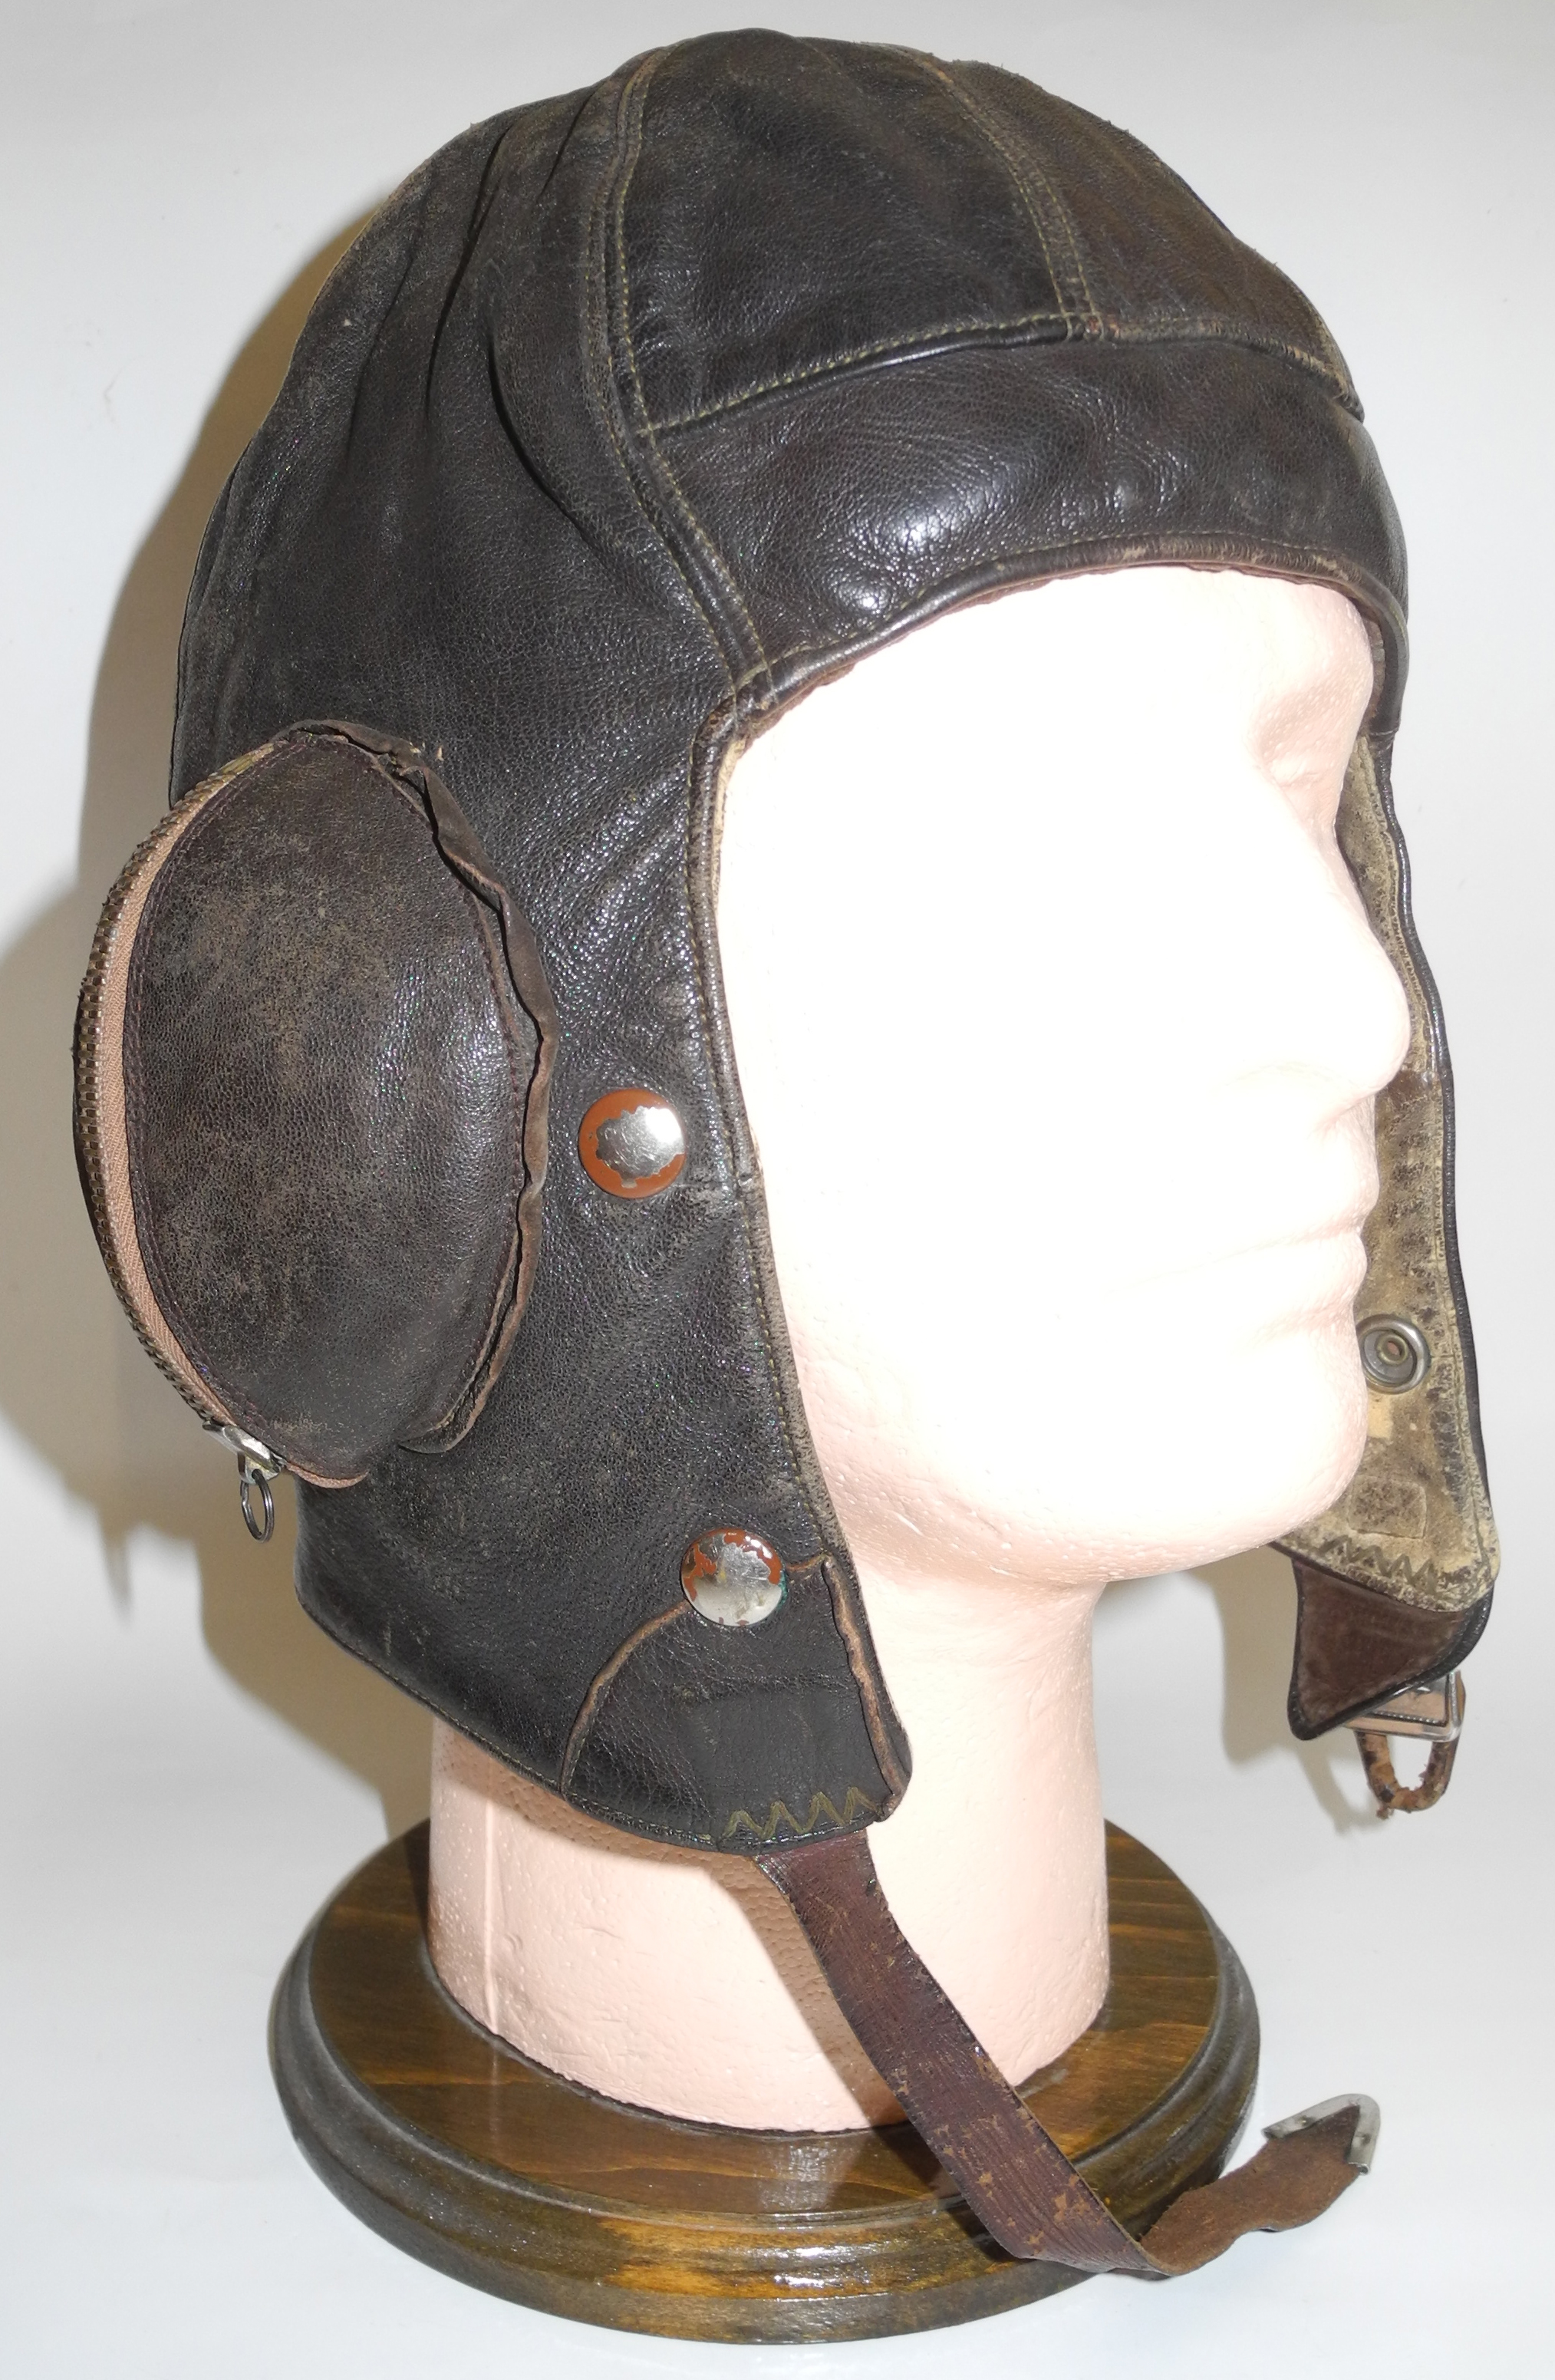 1939 dated Size 4 Type B helmet